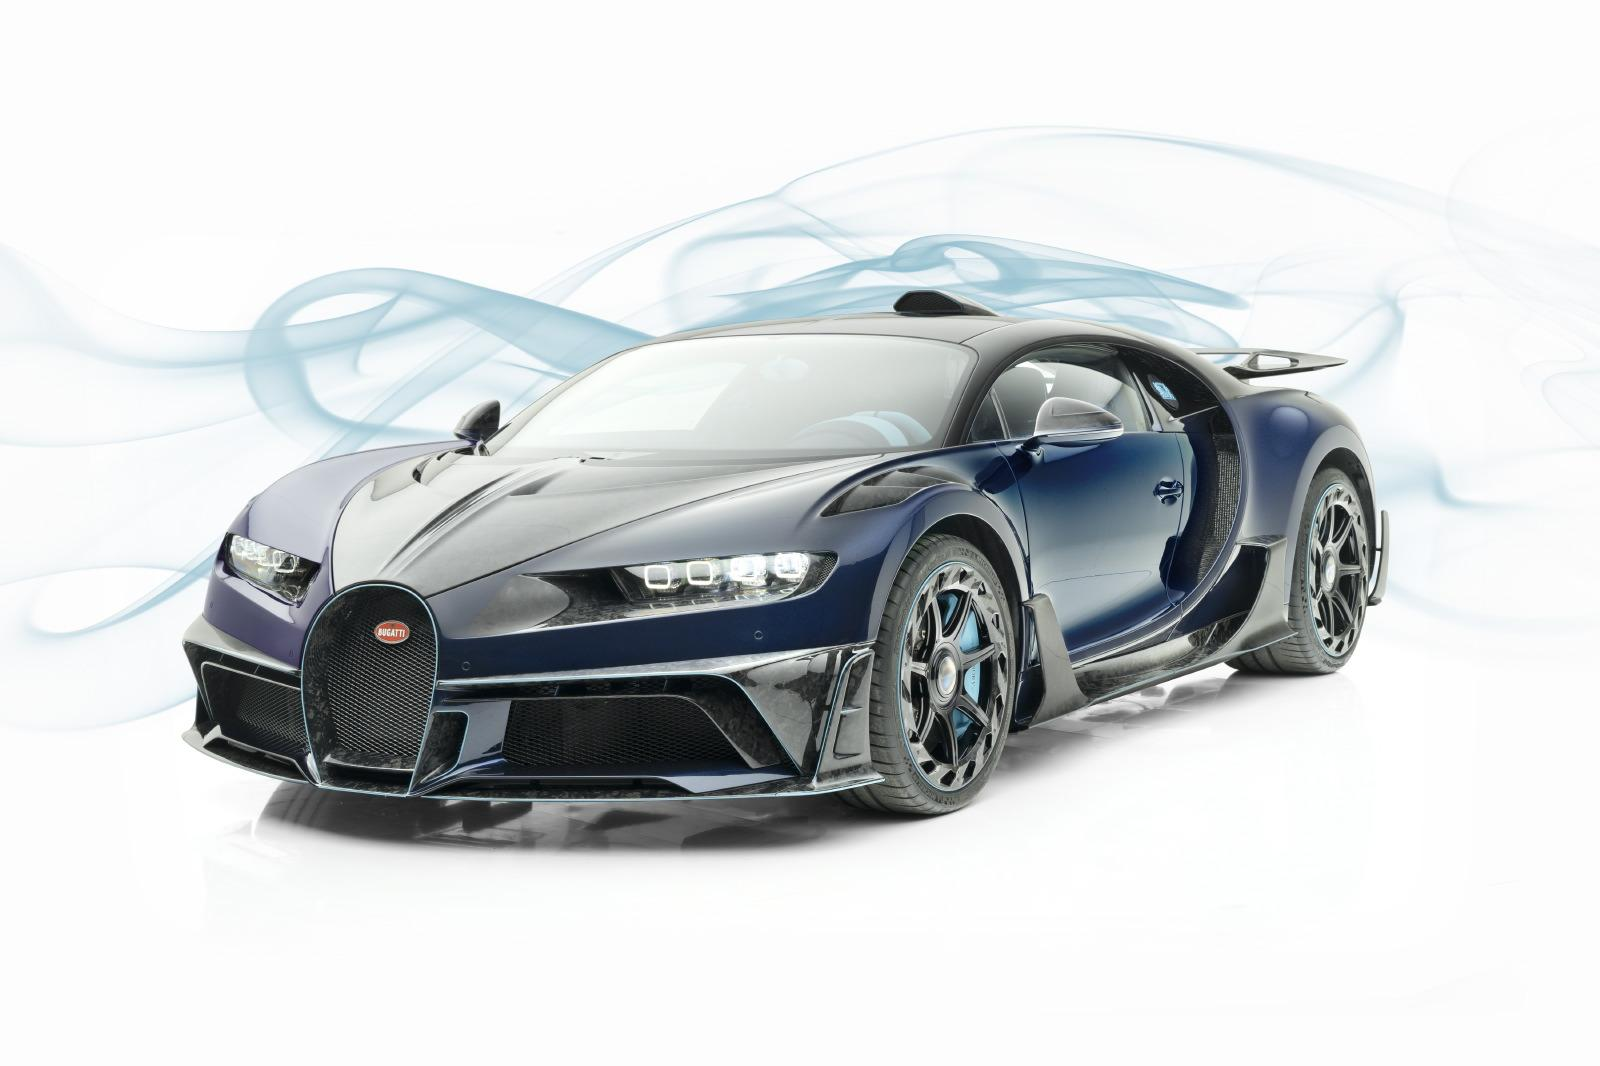 Cars Wc Bril.Mansory Bugatti Chiron Is Als Een Warme Wc Bril Topgear